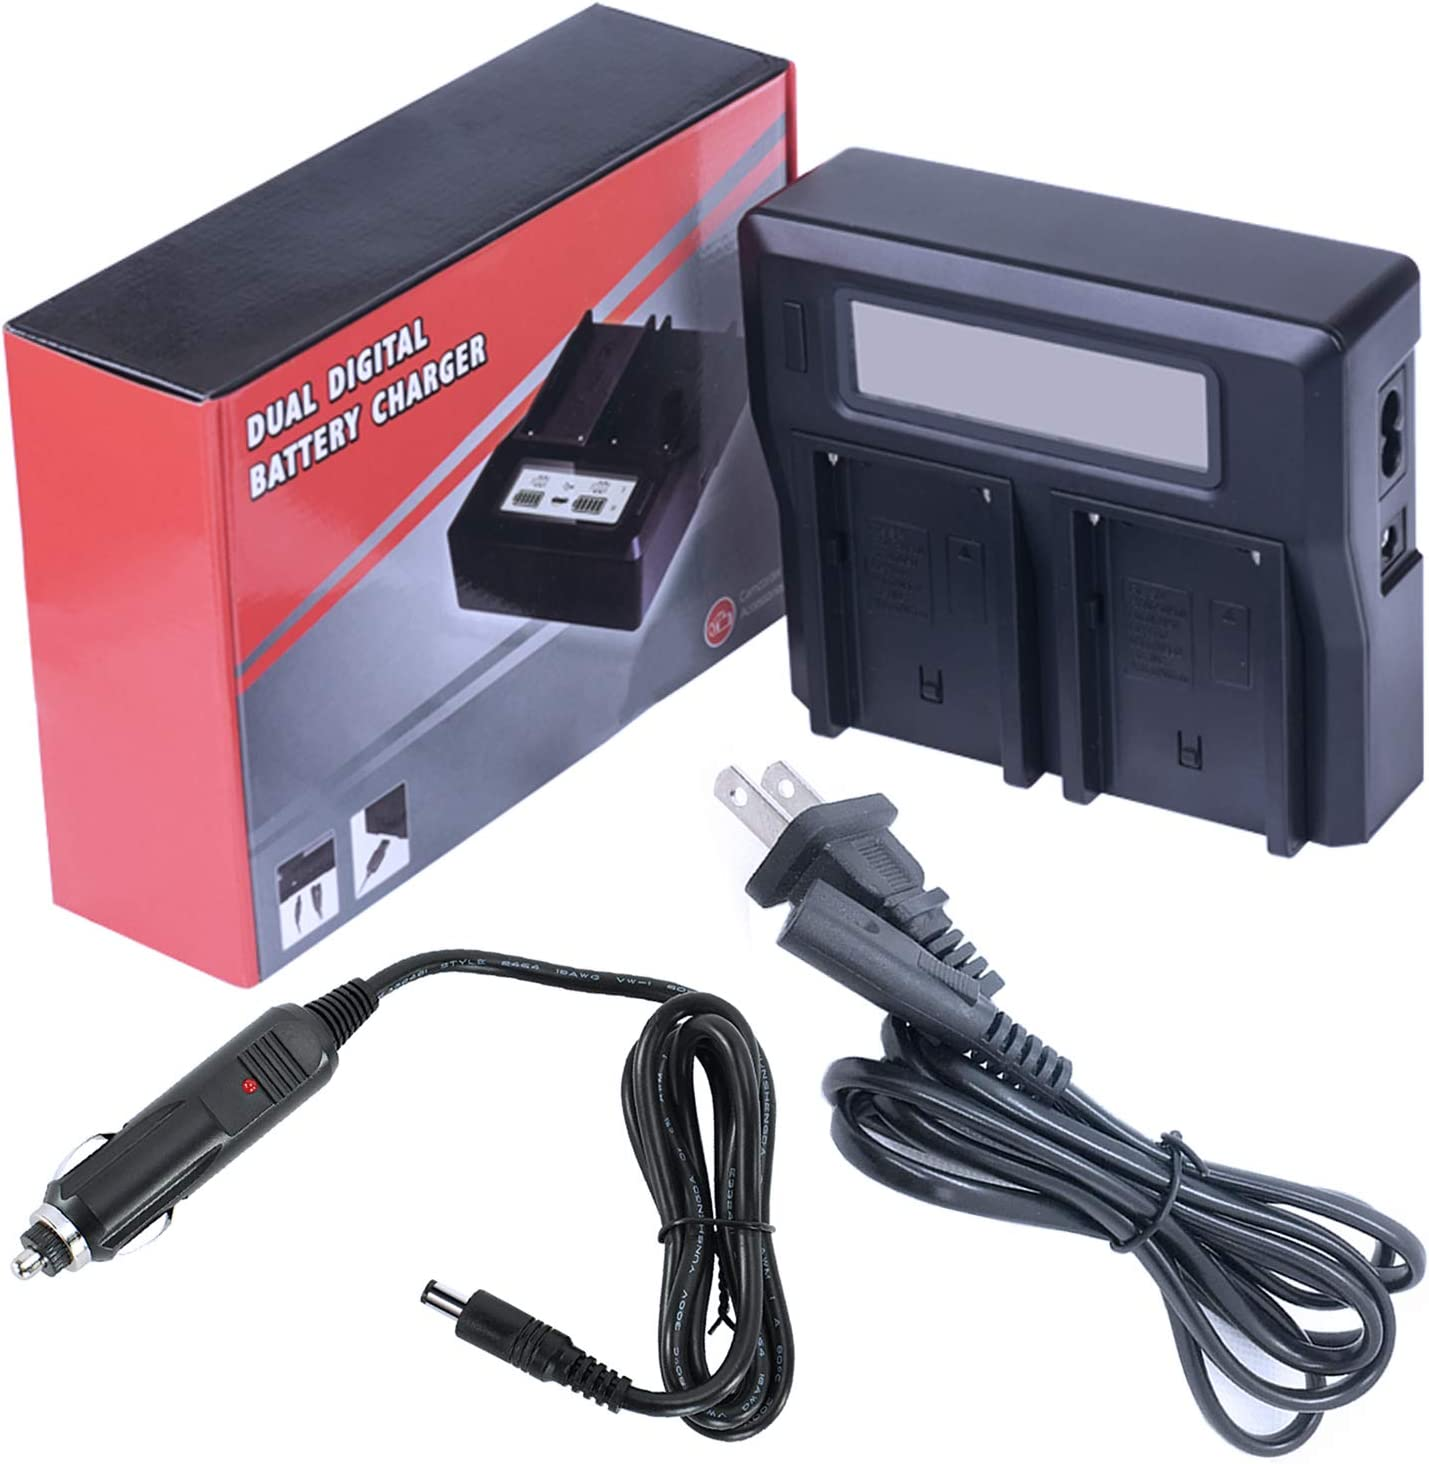 GZ-MG730BUS Camcorder Battery Charger for JVC Everio GZ-MG670BUS GZ-MG680BUS